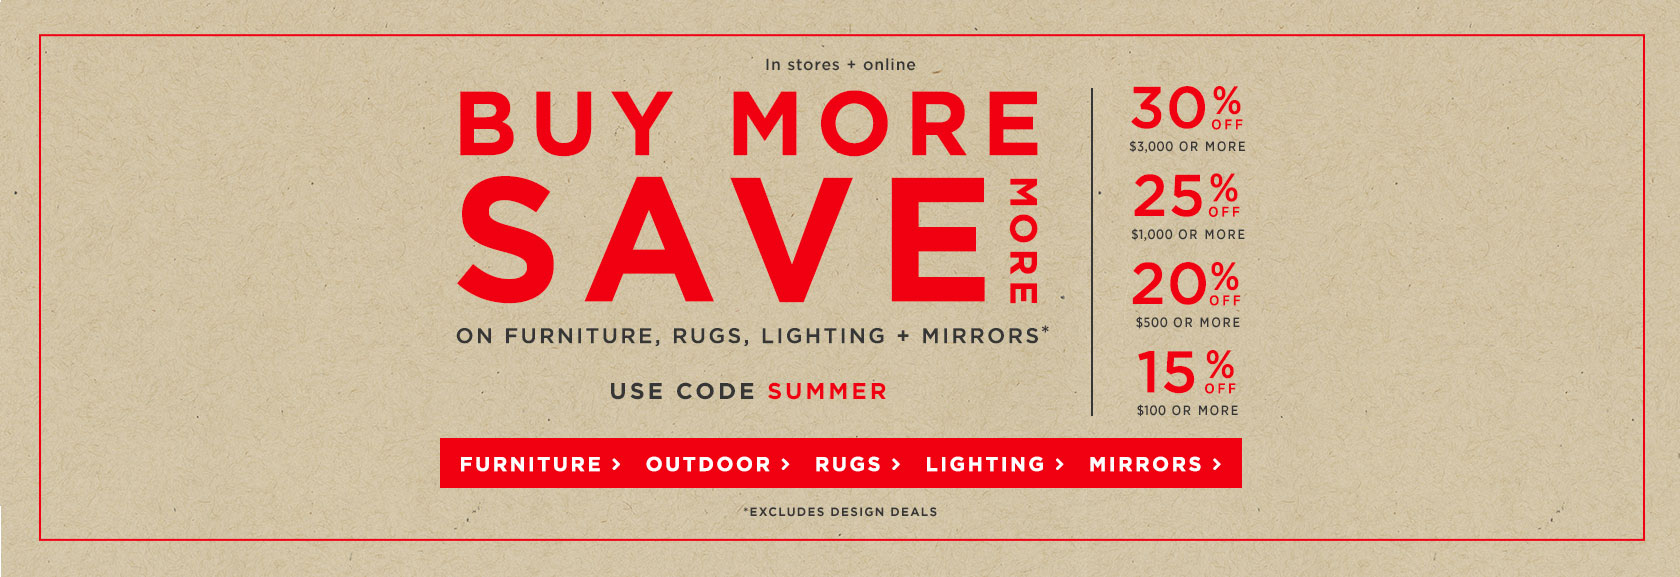 Buy More Save More On Furniture, Rugs, Lighting + Mirrors! Use Code SUMMER